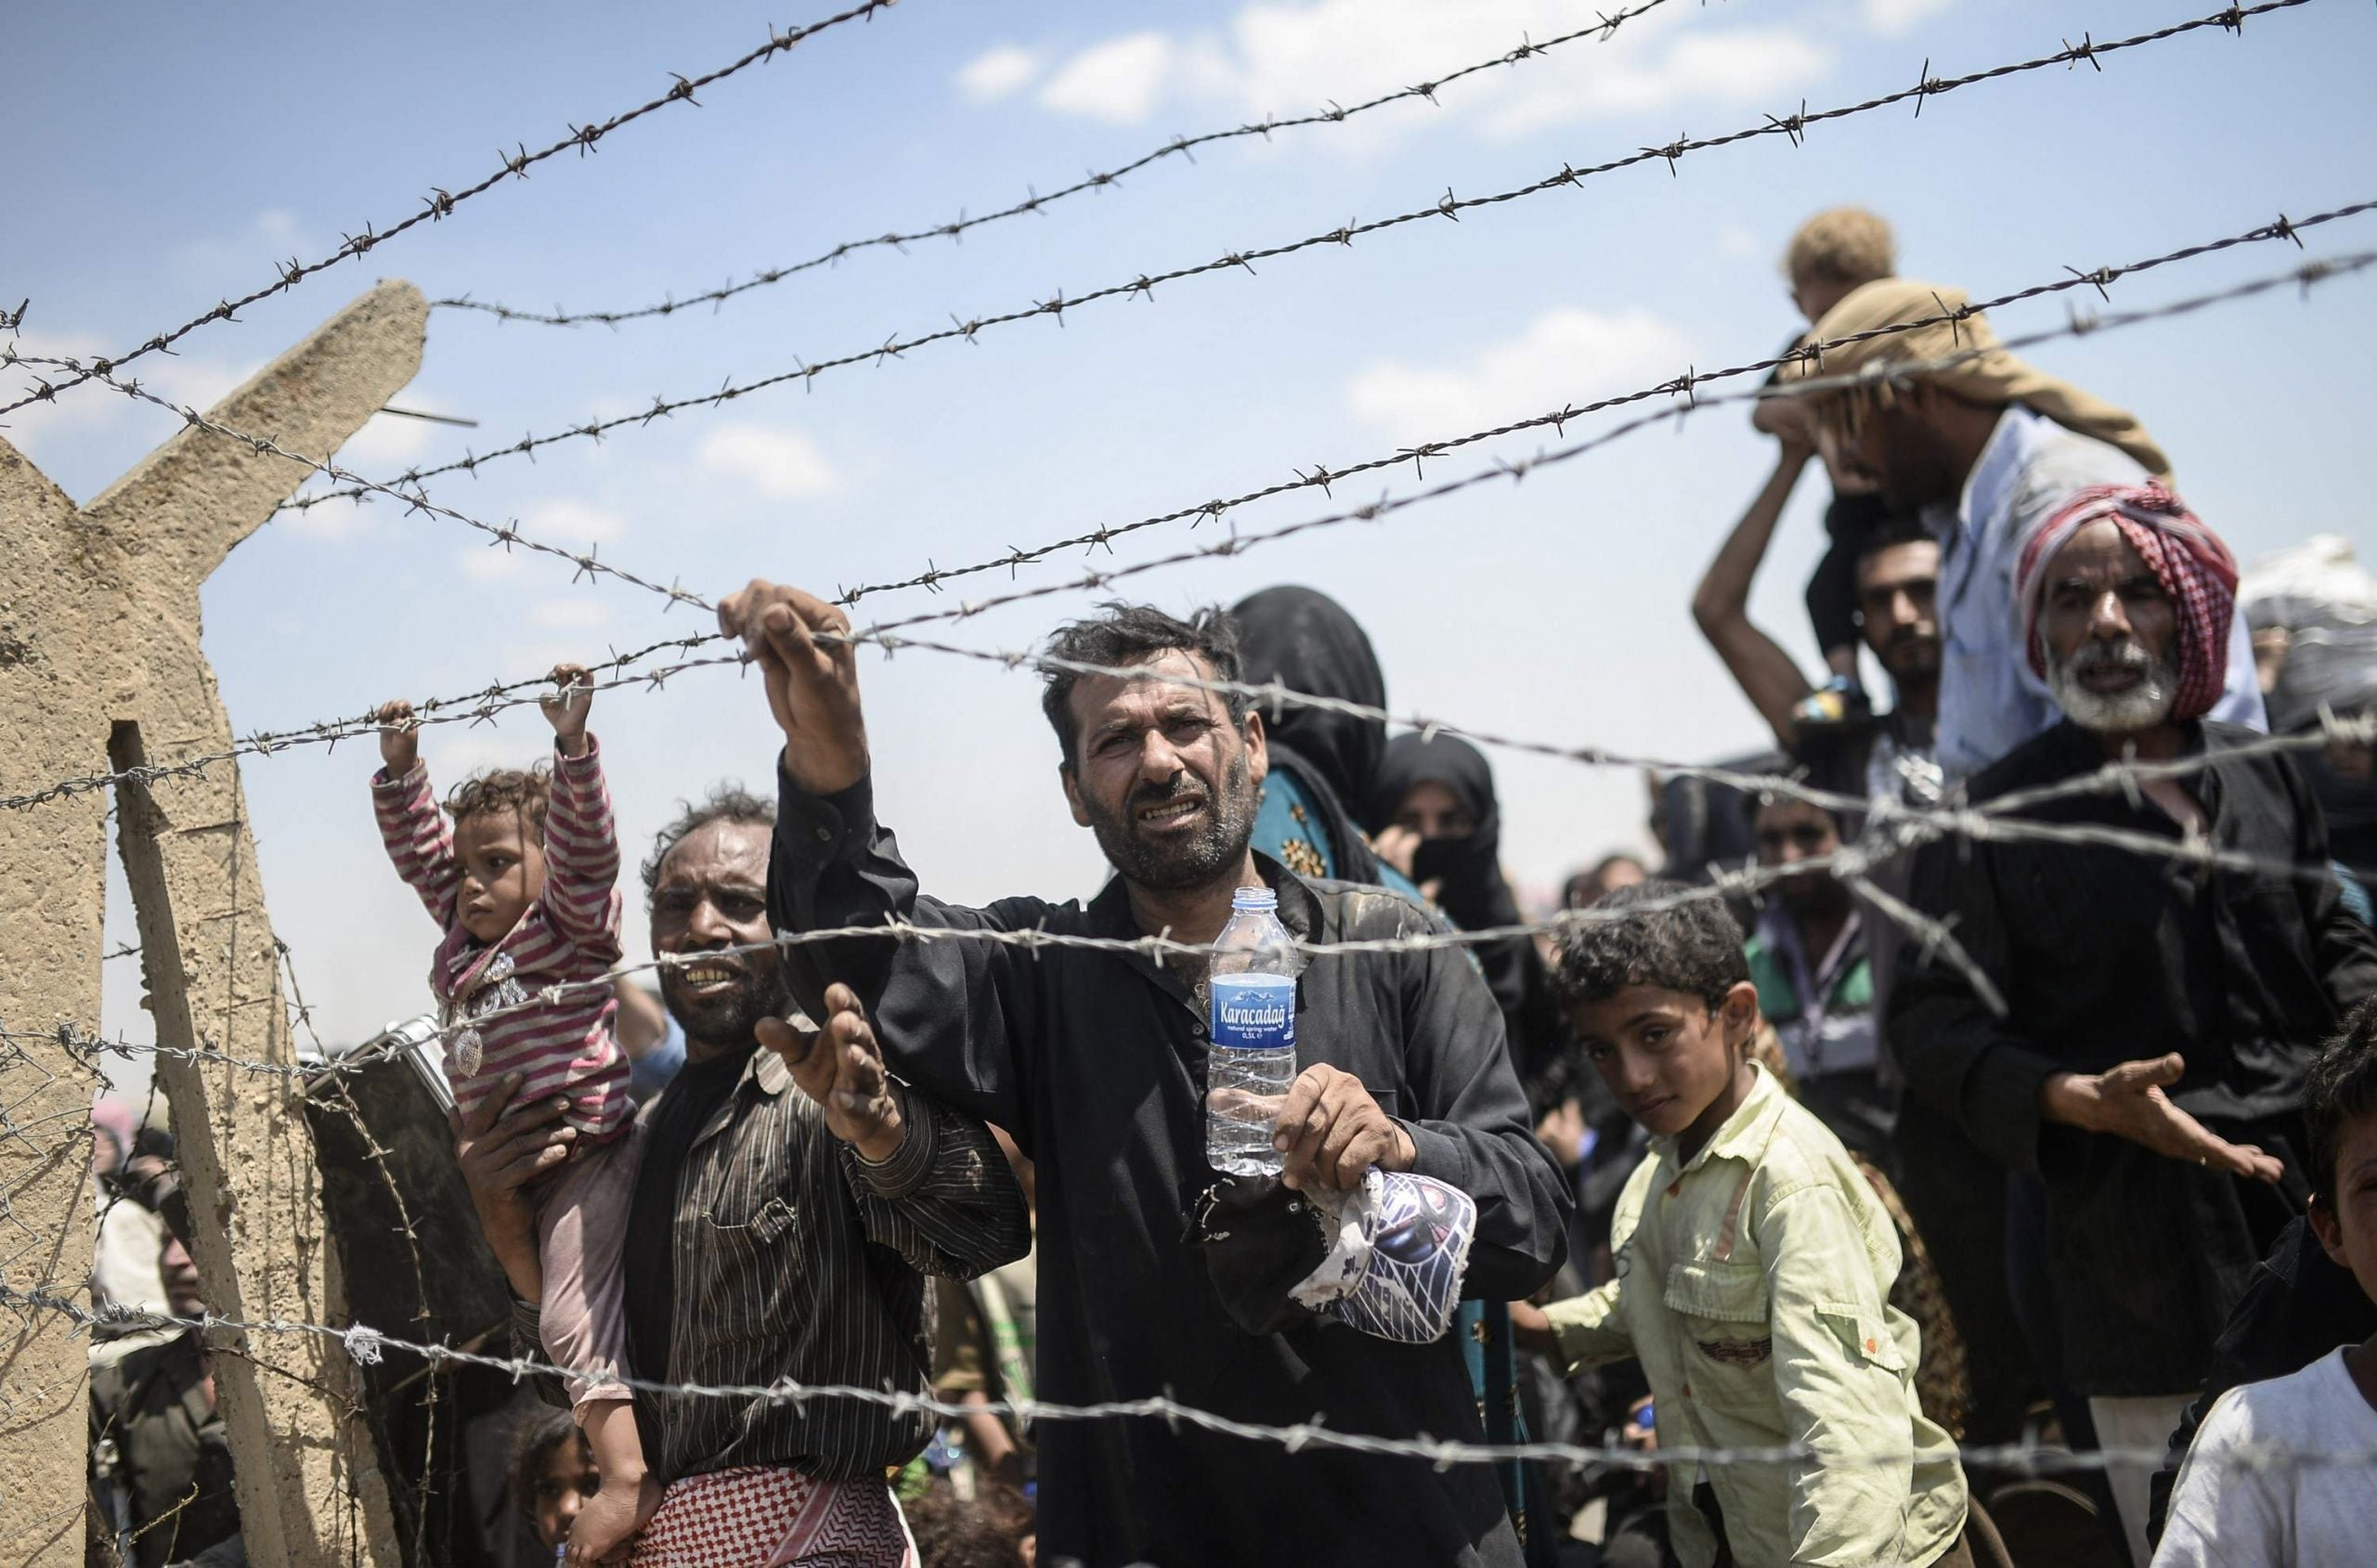 We need to talk about the origins of the refugee crisis